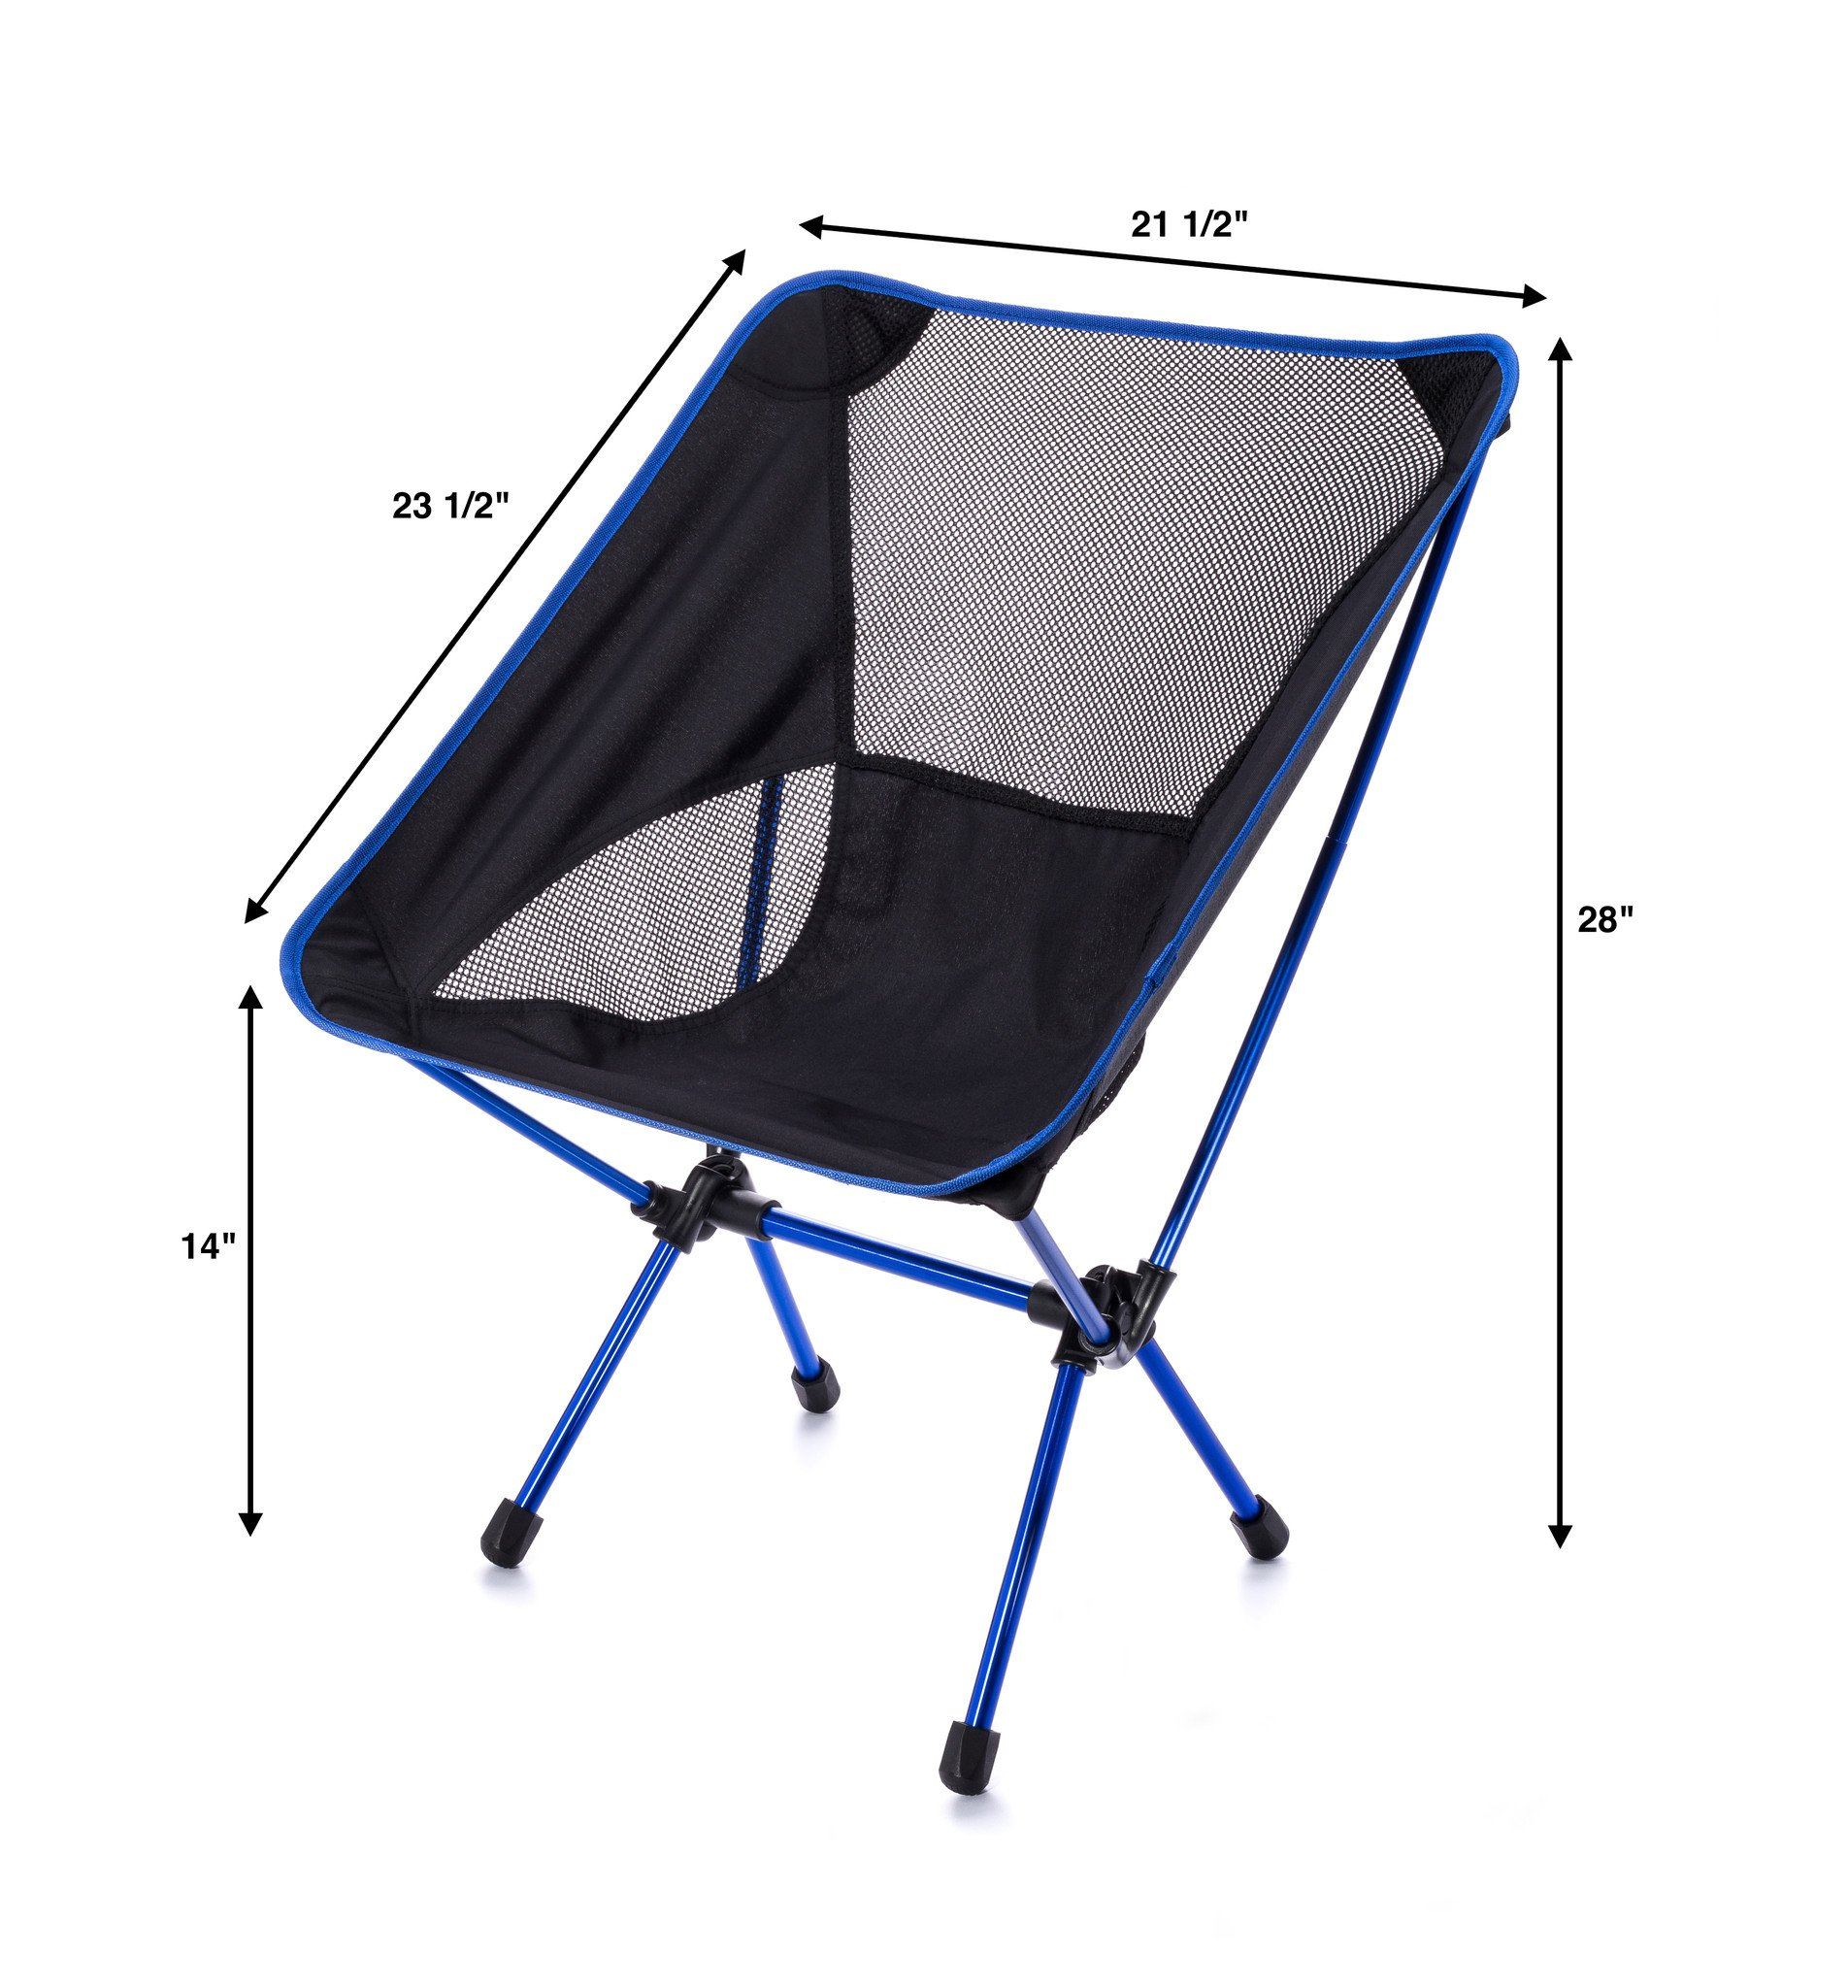 folding camping chairs ... trekultra portable compact lightweight camp chair with bag - ultralight folding UUNEEUW